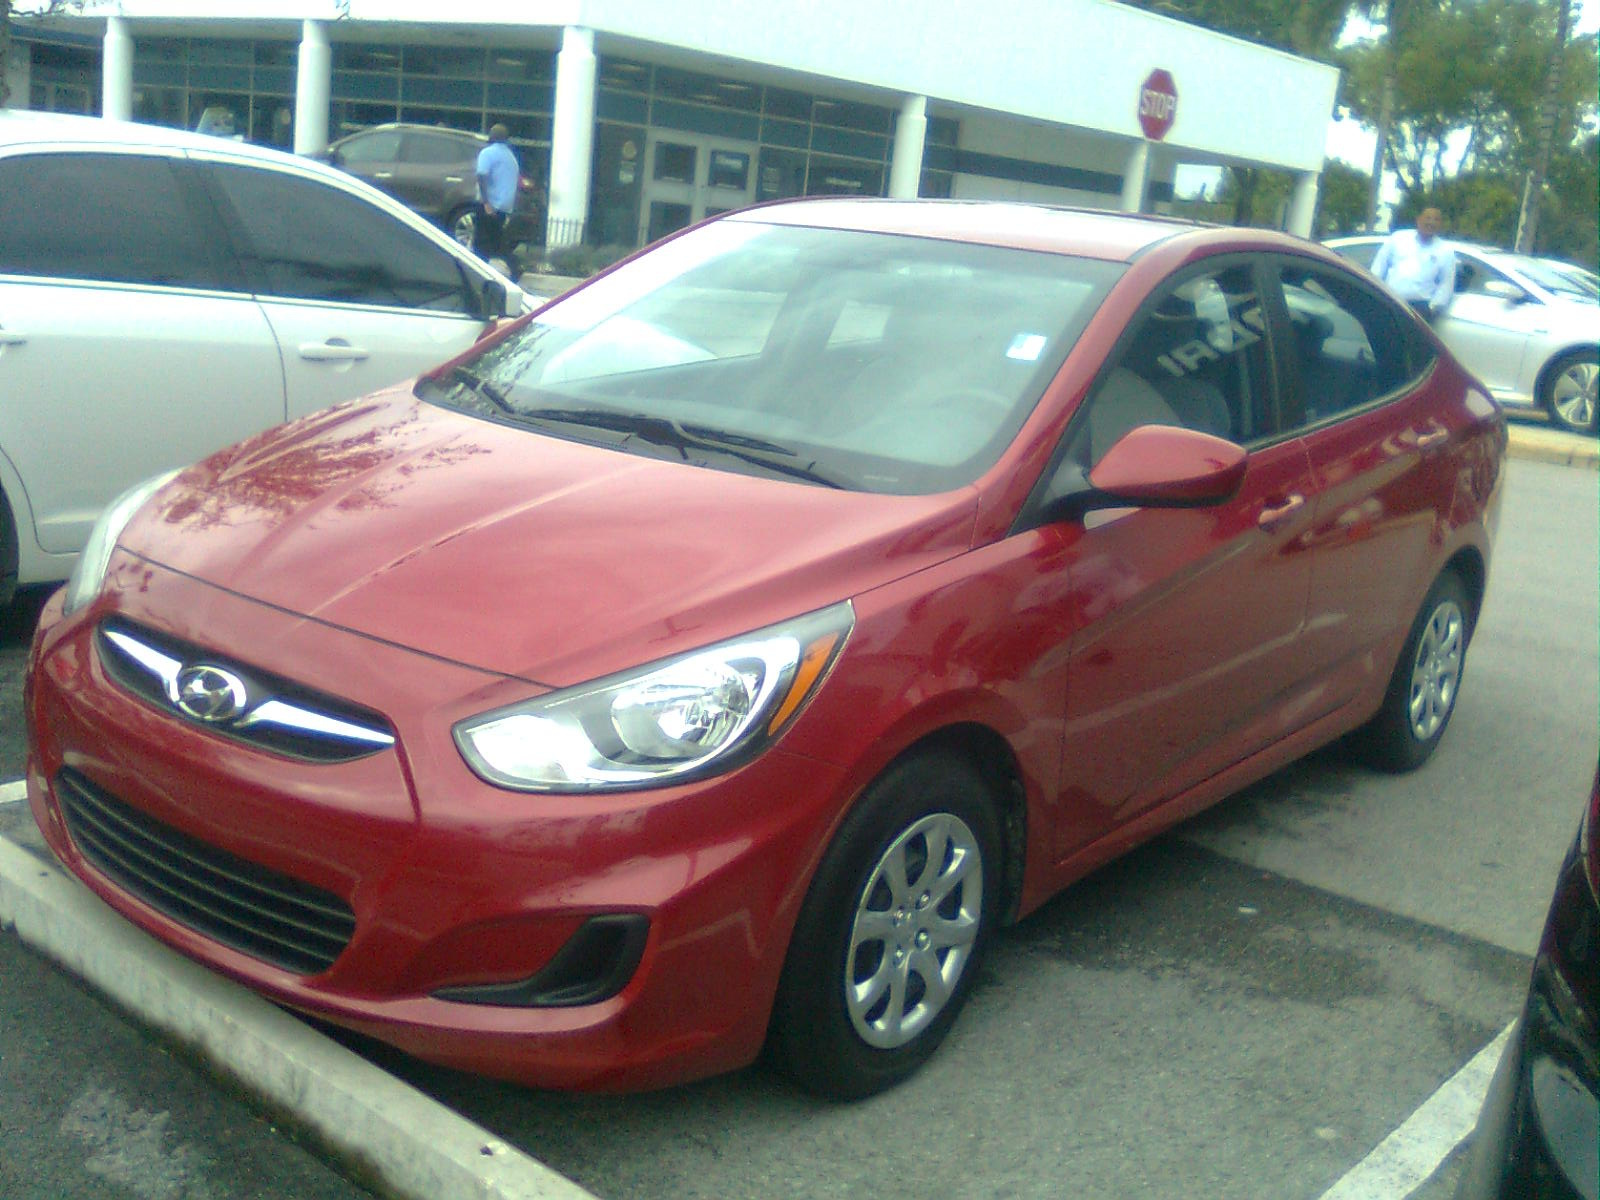 new 2014 2015 hyundai accent for sale cargurus canada. Black Bedroom Furniture Sets. Home Design Ideas